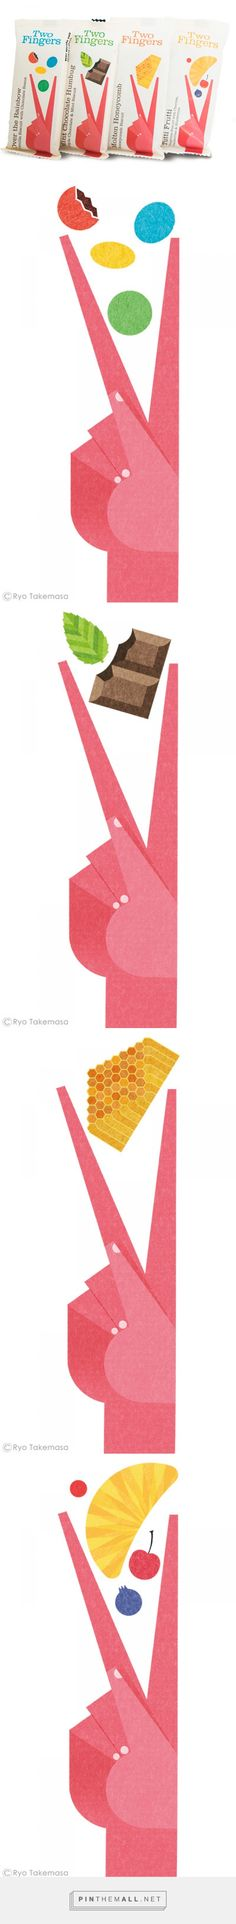 Two Fingers / Packaging illustrations for Two Fingers, a flavored biscuit product line by Artisan Biscuits. PD